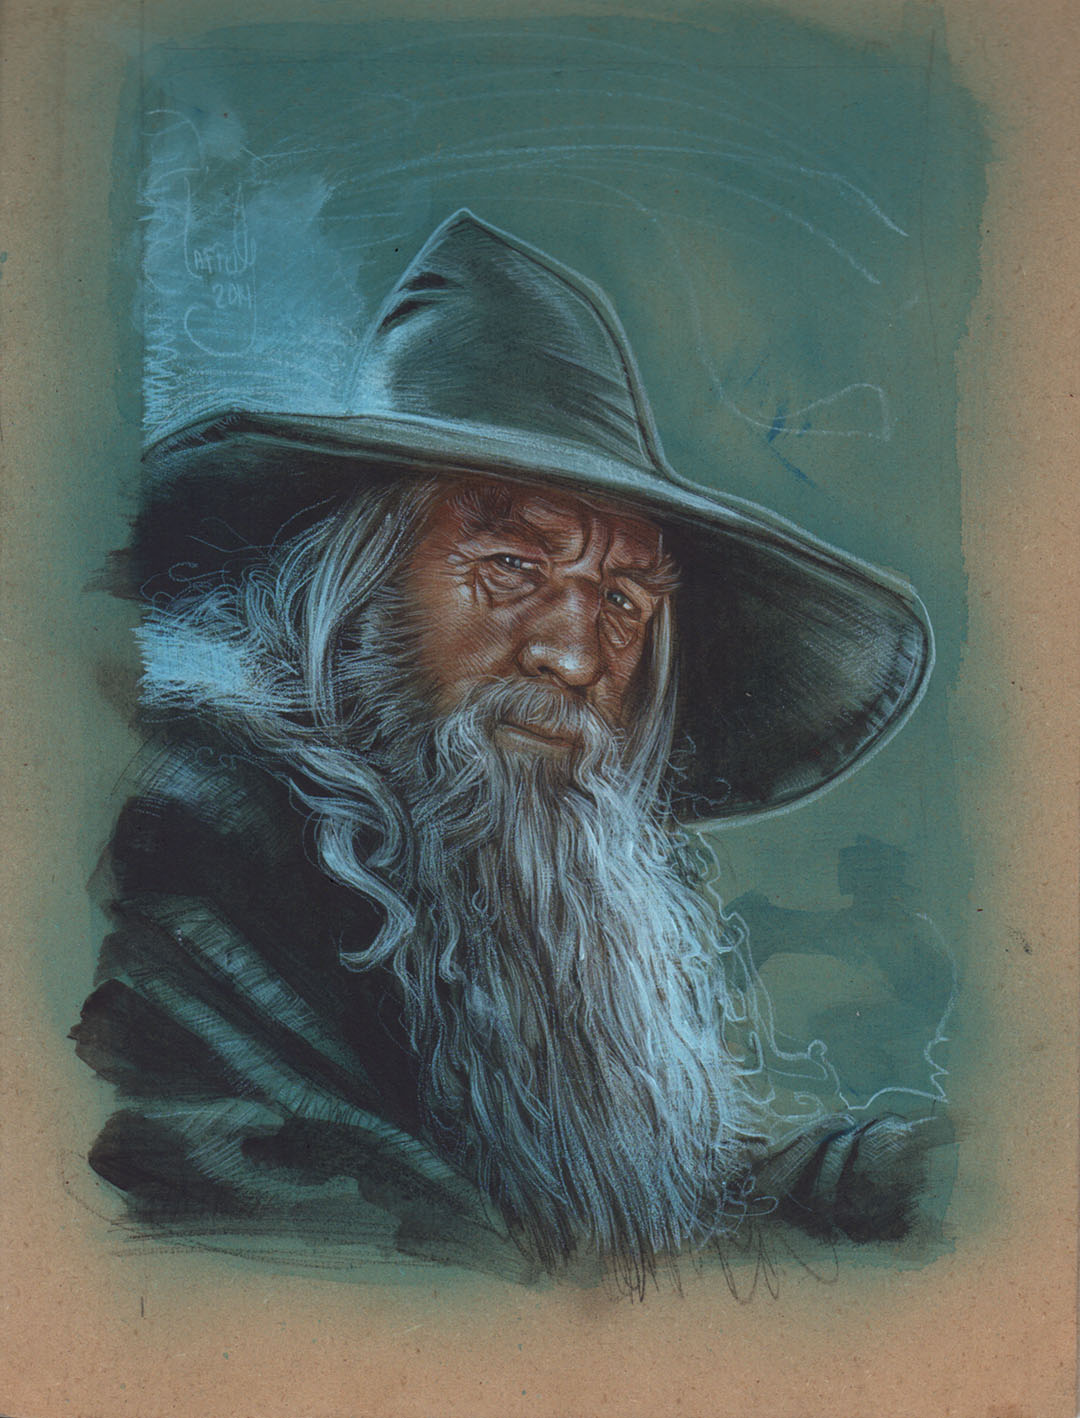 Ian McKellen as Gandalf, Artwork is Copyright © 2014 Jeff Lafferty